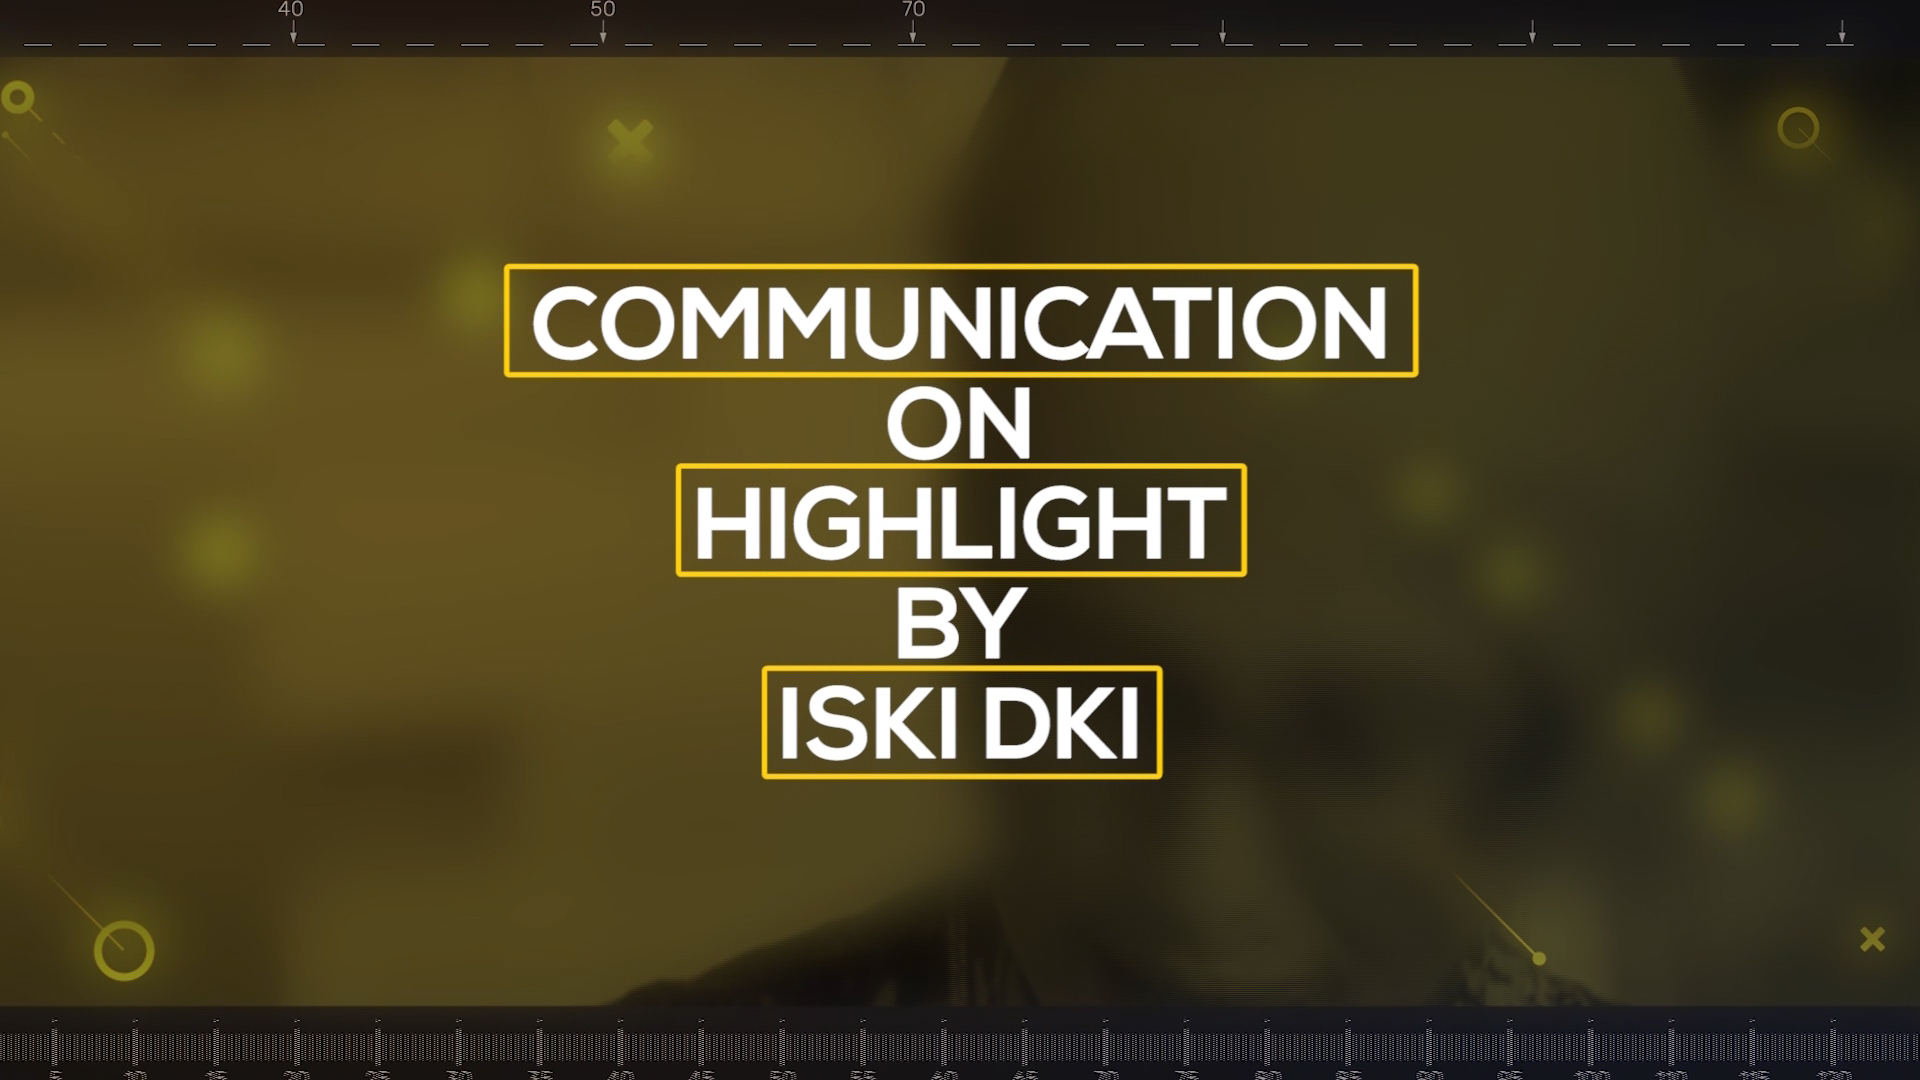 COMMUNICATION ON HIGHLIGHT BY ISKI DKI